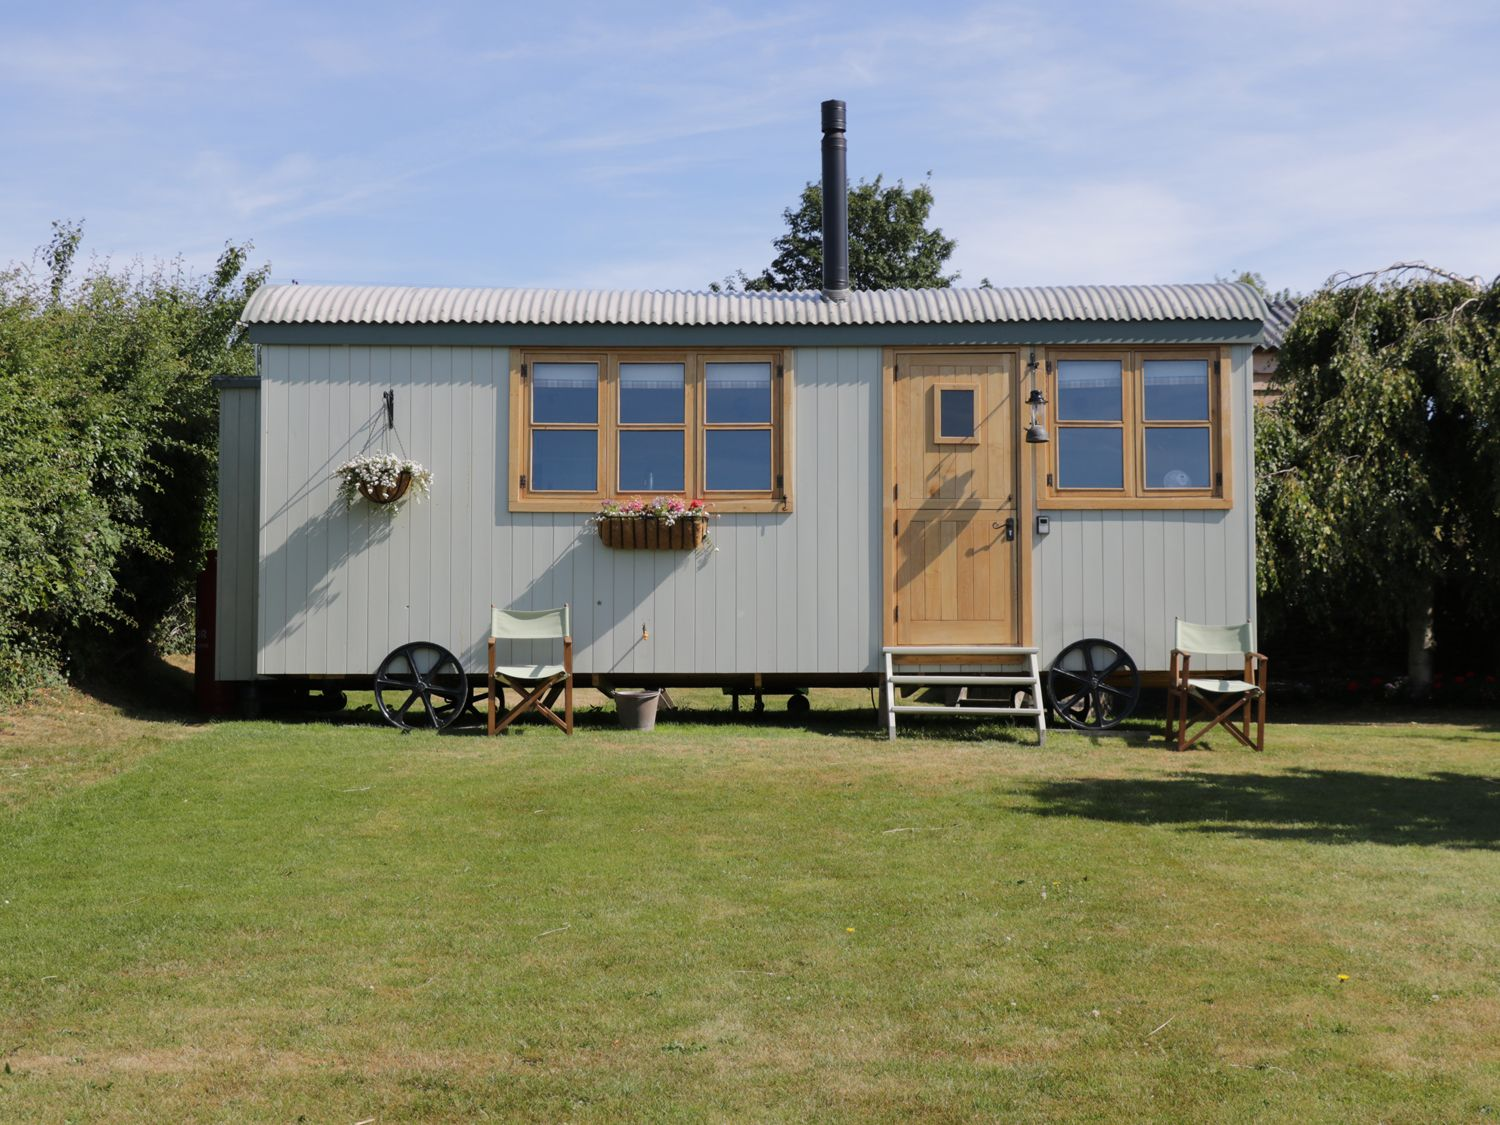 20 Lodges with Hot Tubs within a 90 minute drive of York  - The Brae